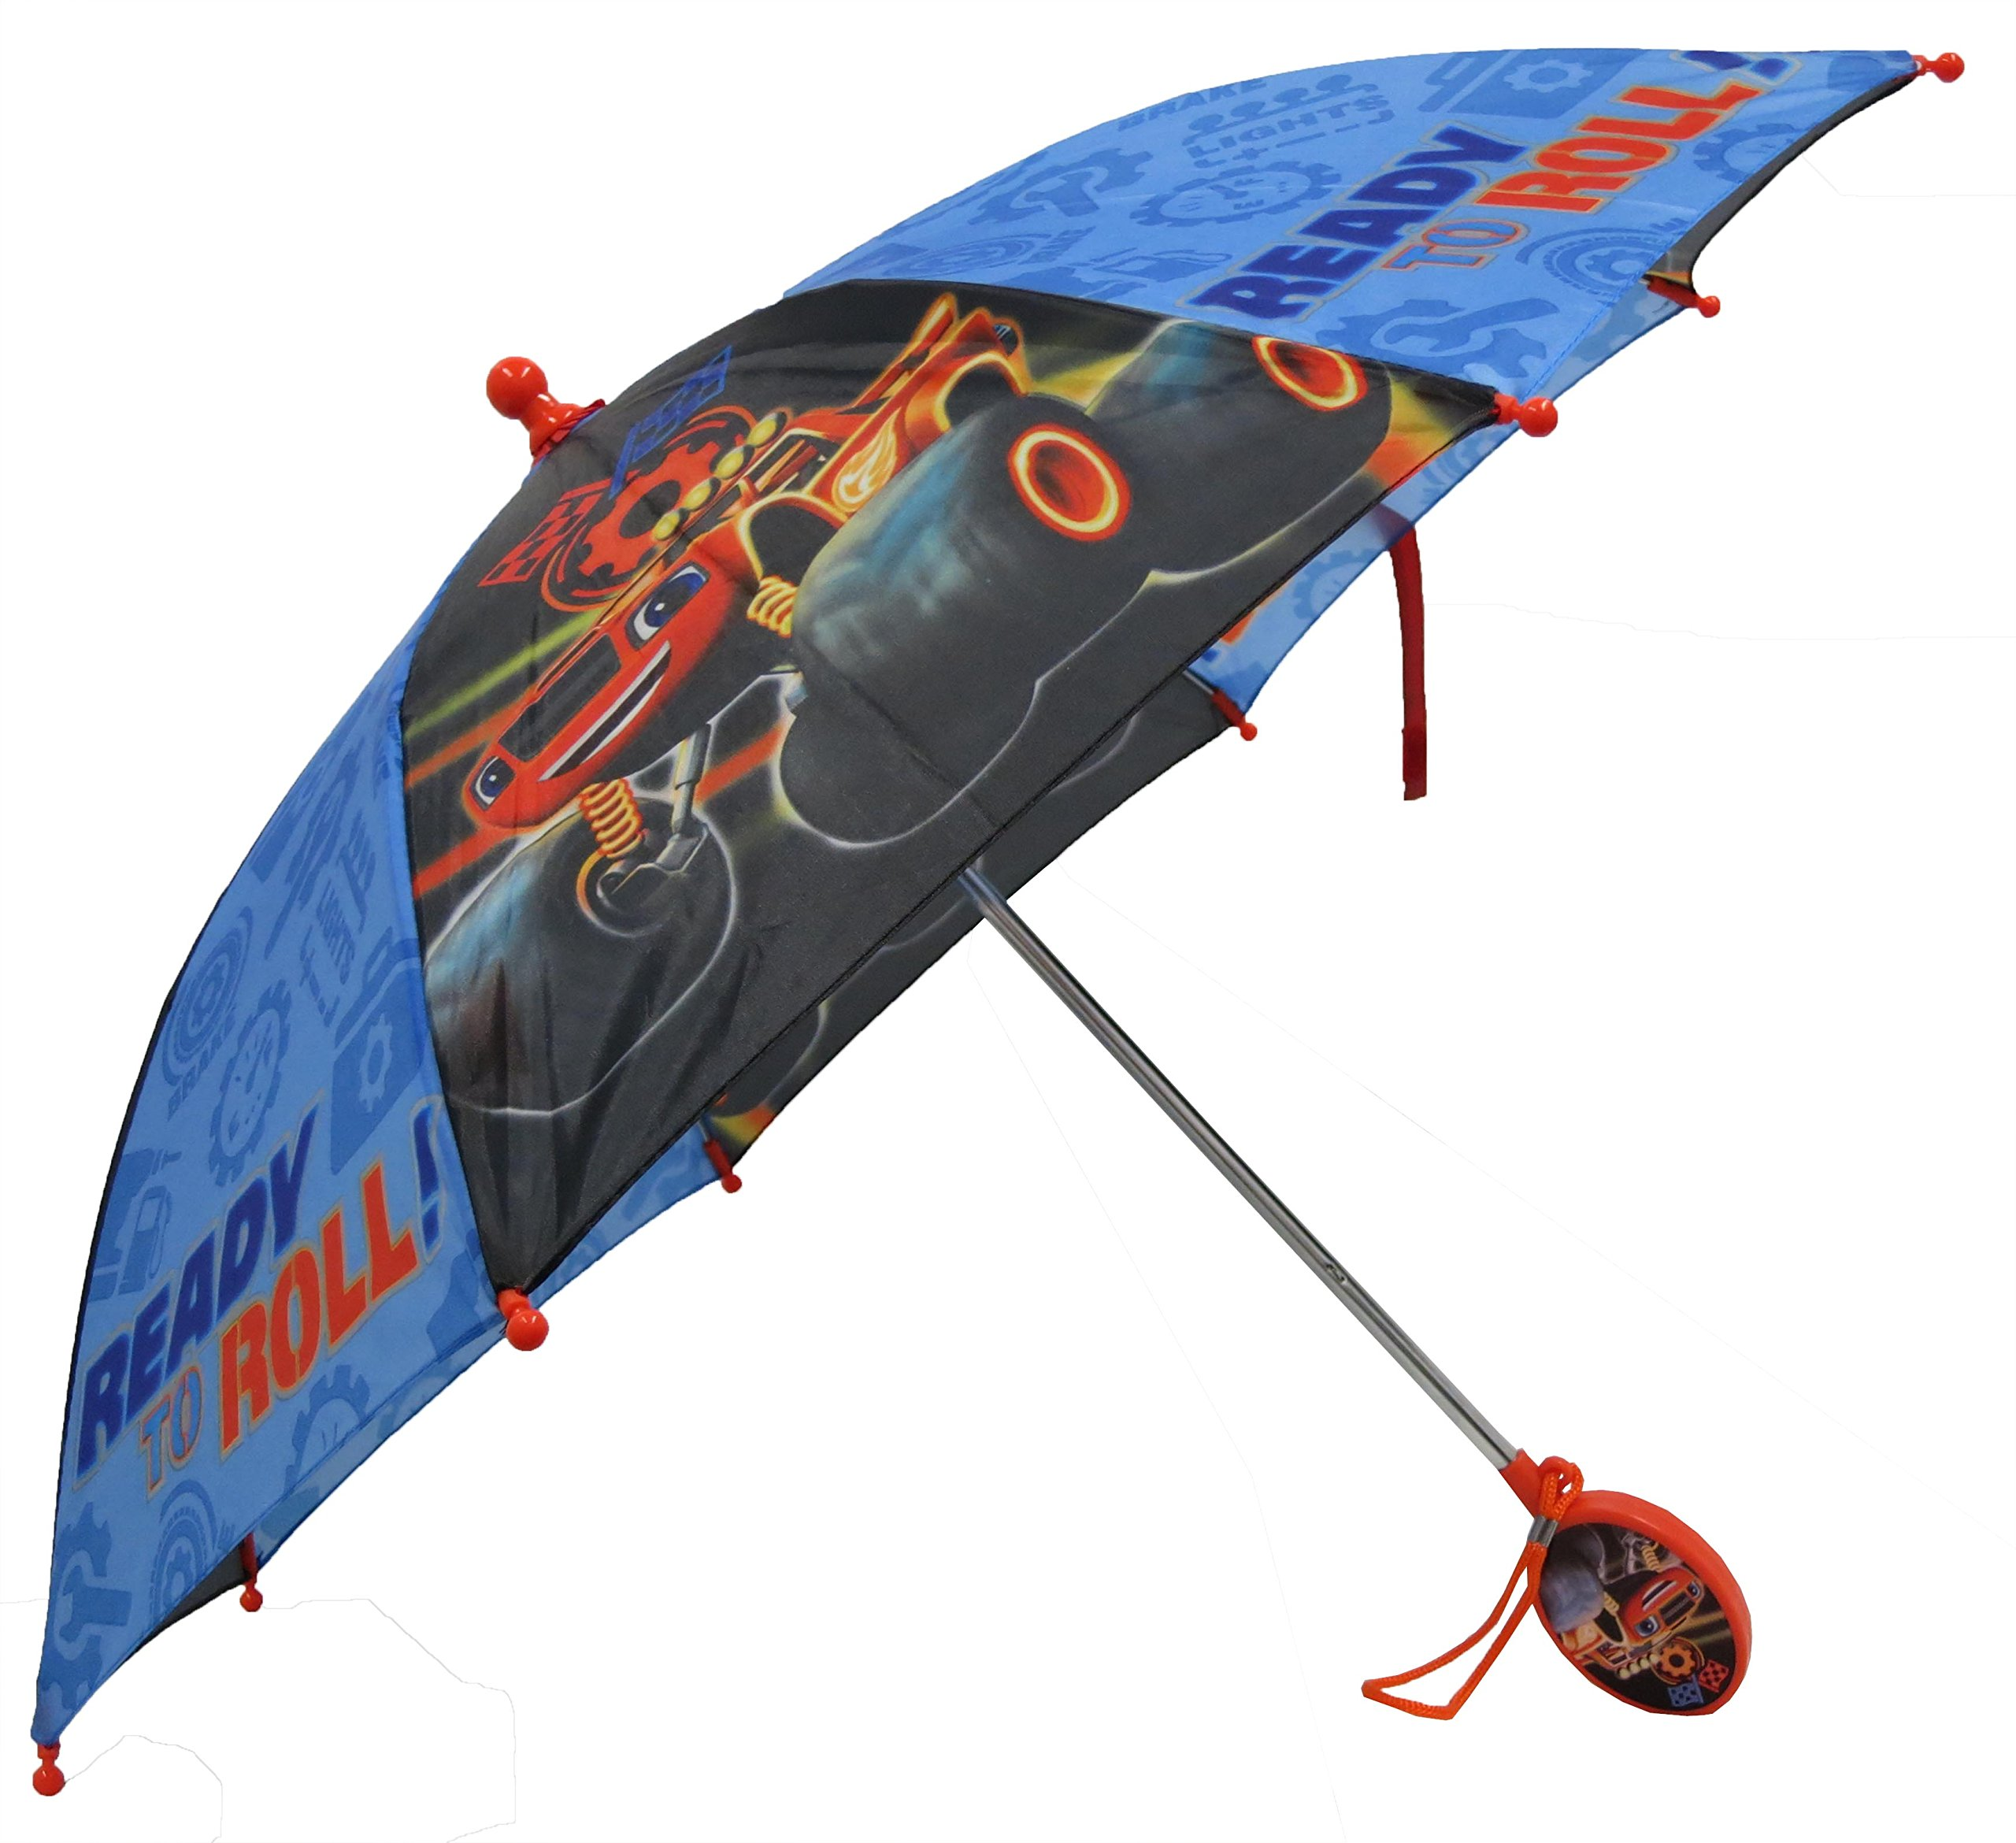 Nickelodeon Little Boys Blaze Character Rainwear Umbrella, Black/Blue, Age 3-7 by Nickelodeon (Image #1)